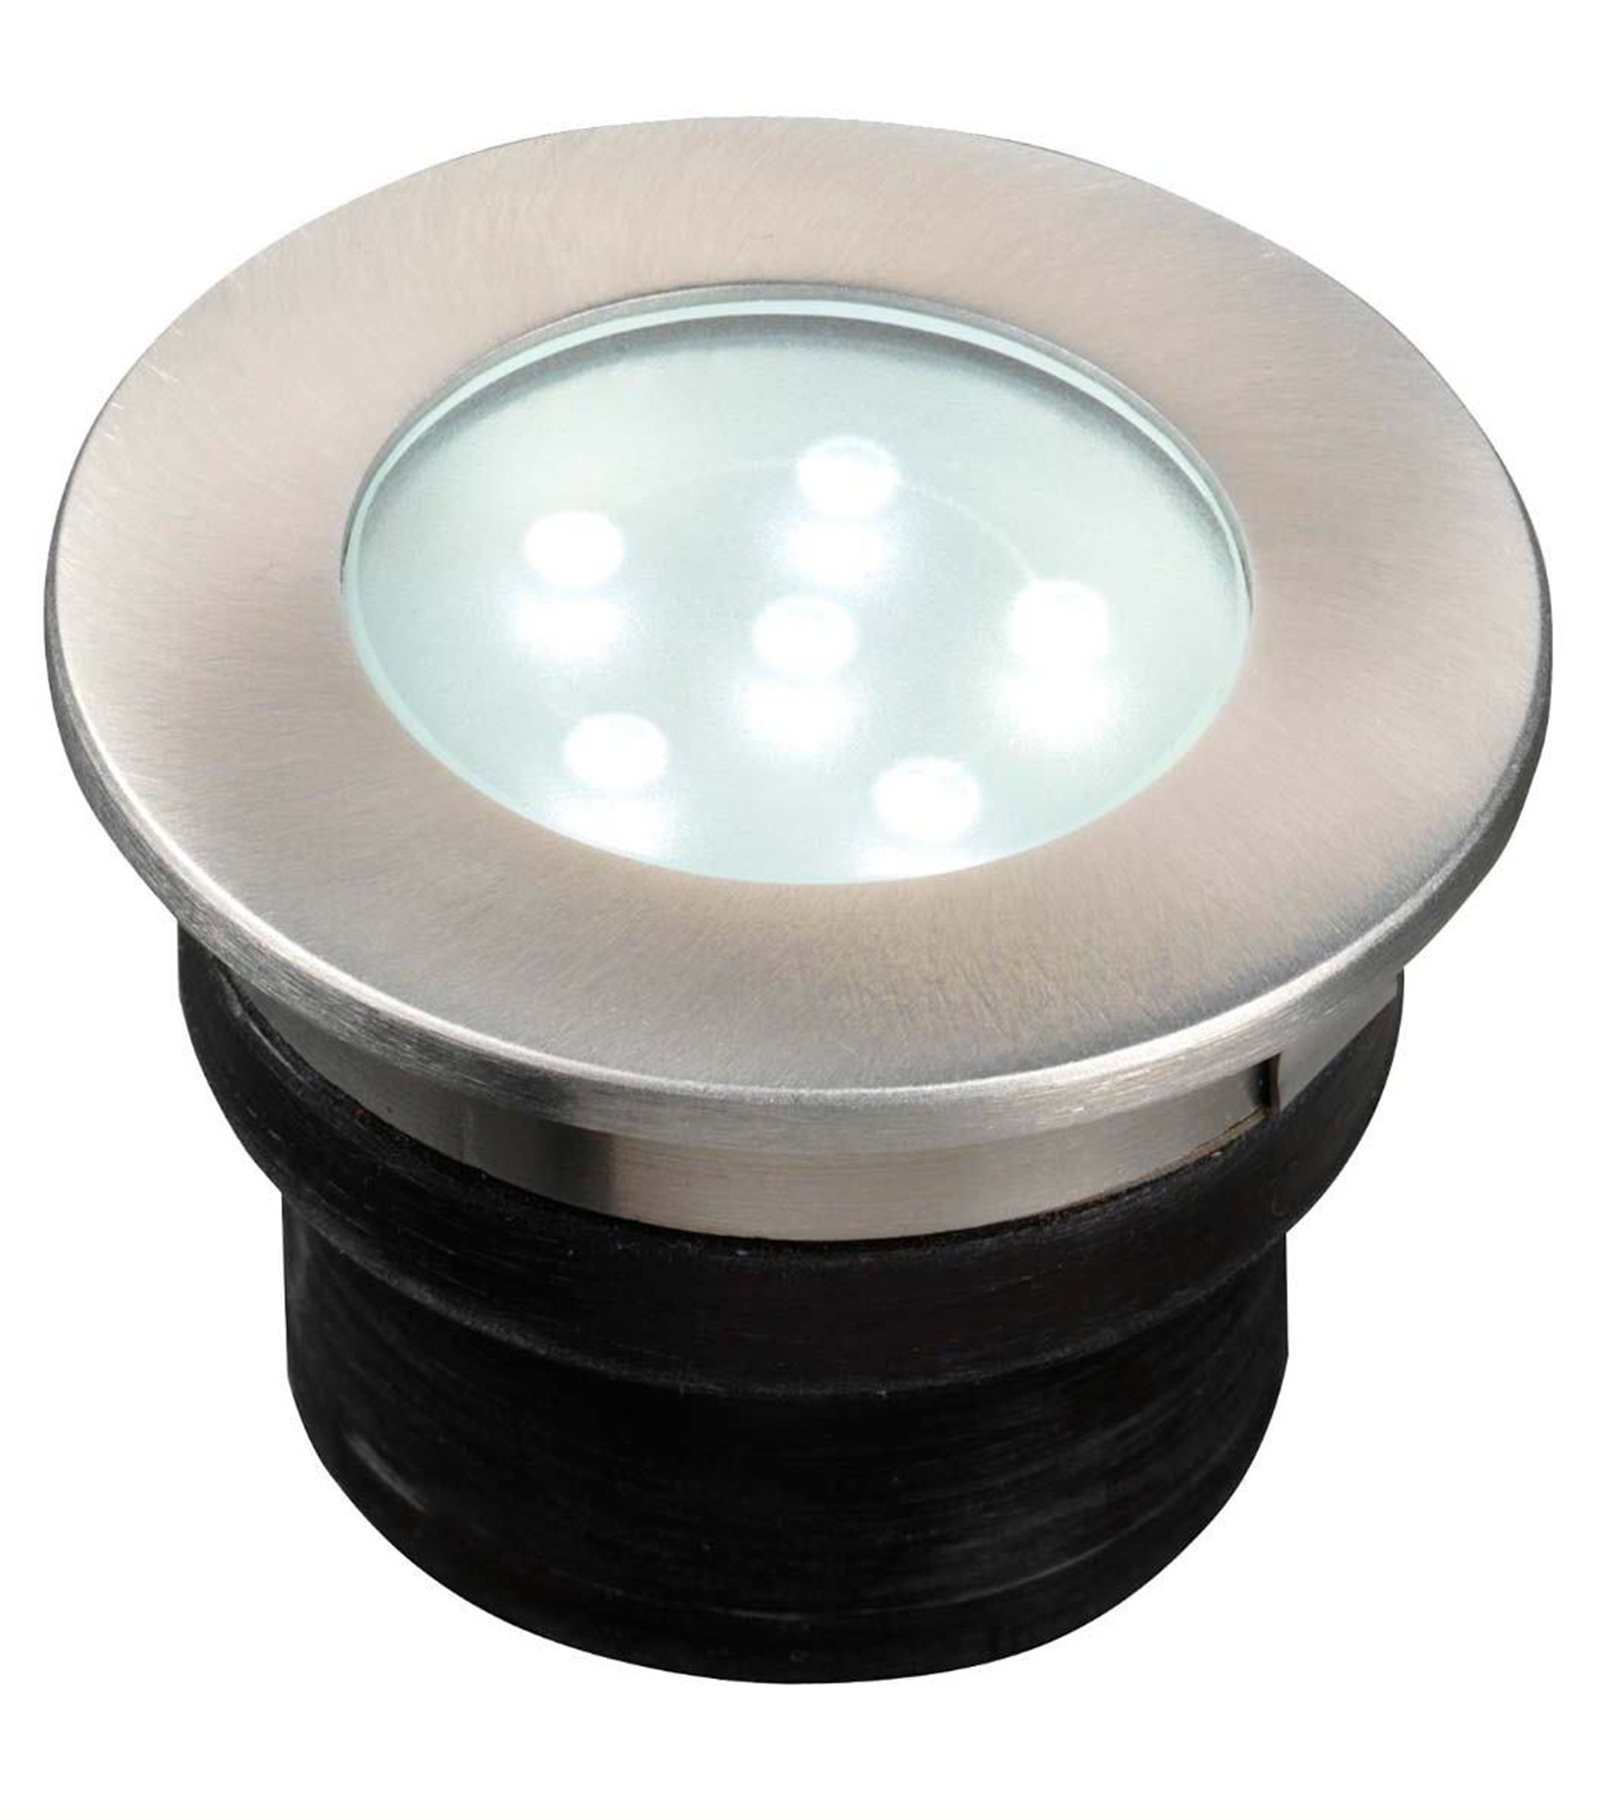 Spot Led Exterieur 12 Volts Spot Encastrable Brevus 1w Platine Led Ip68 Blanc Très Froid